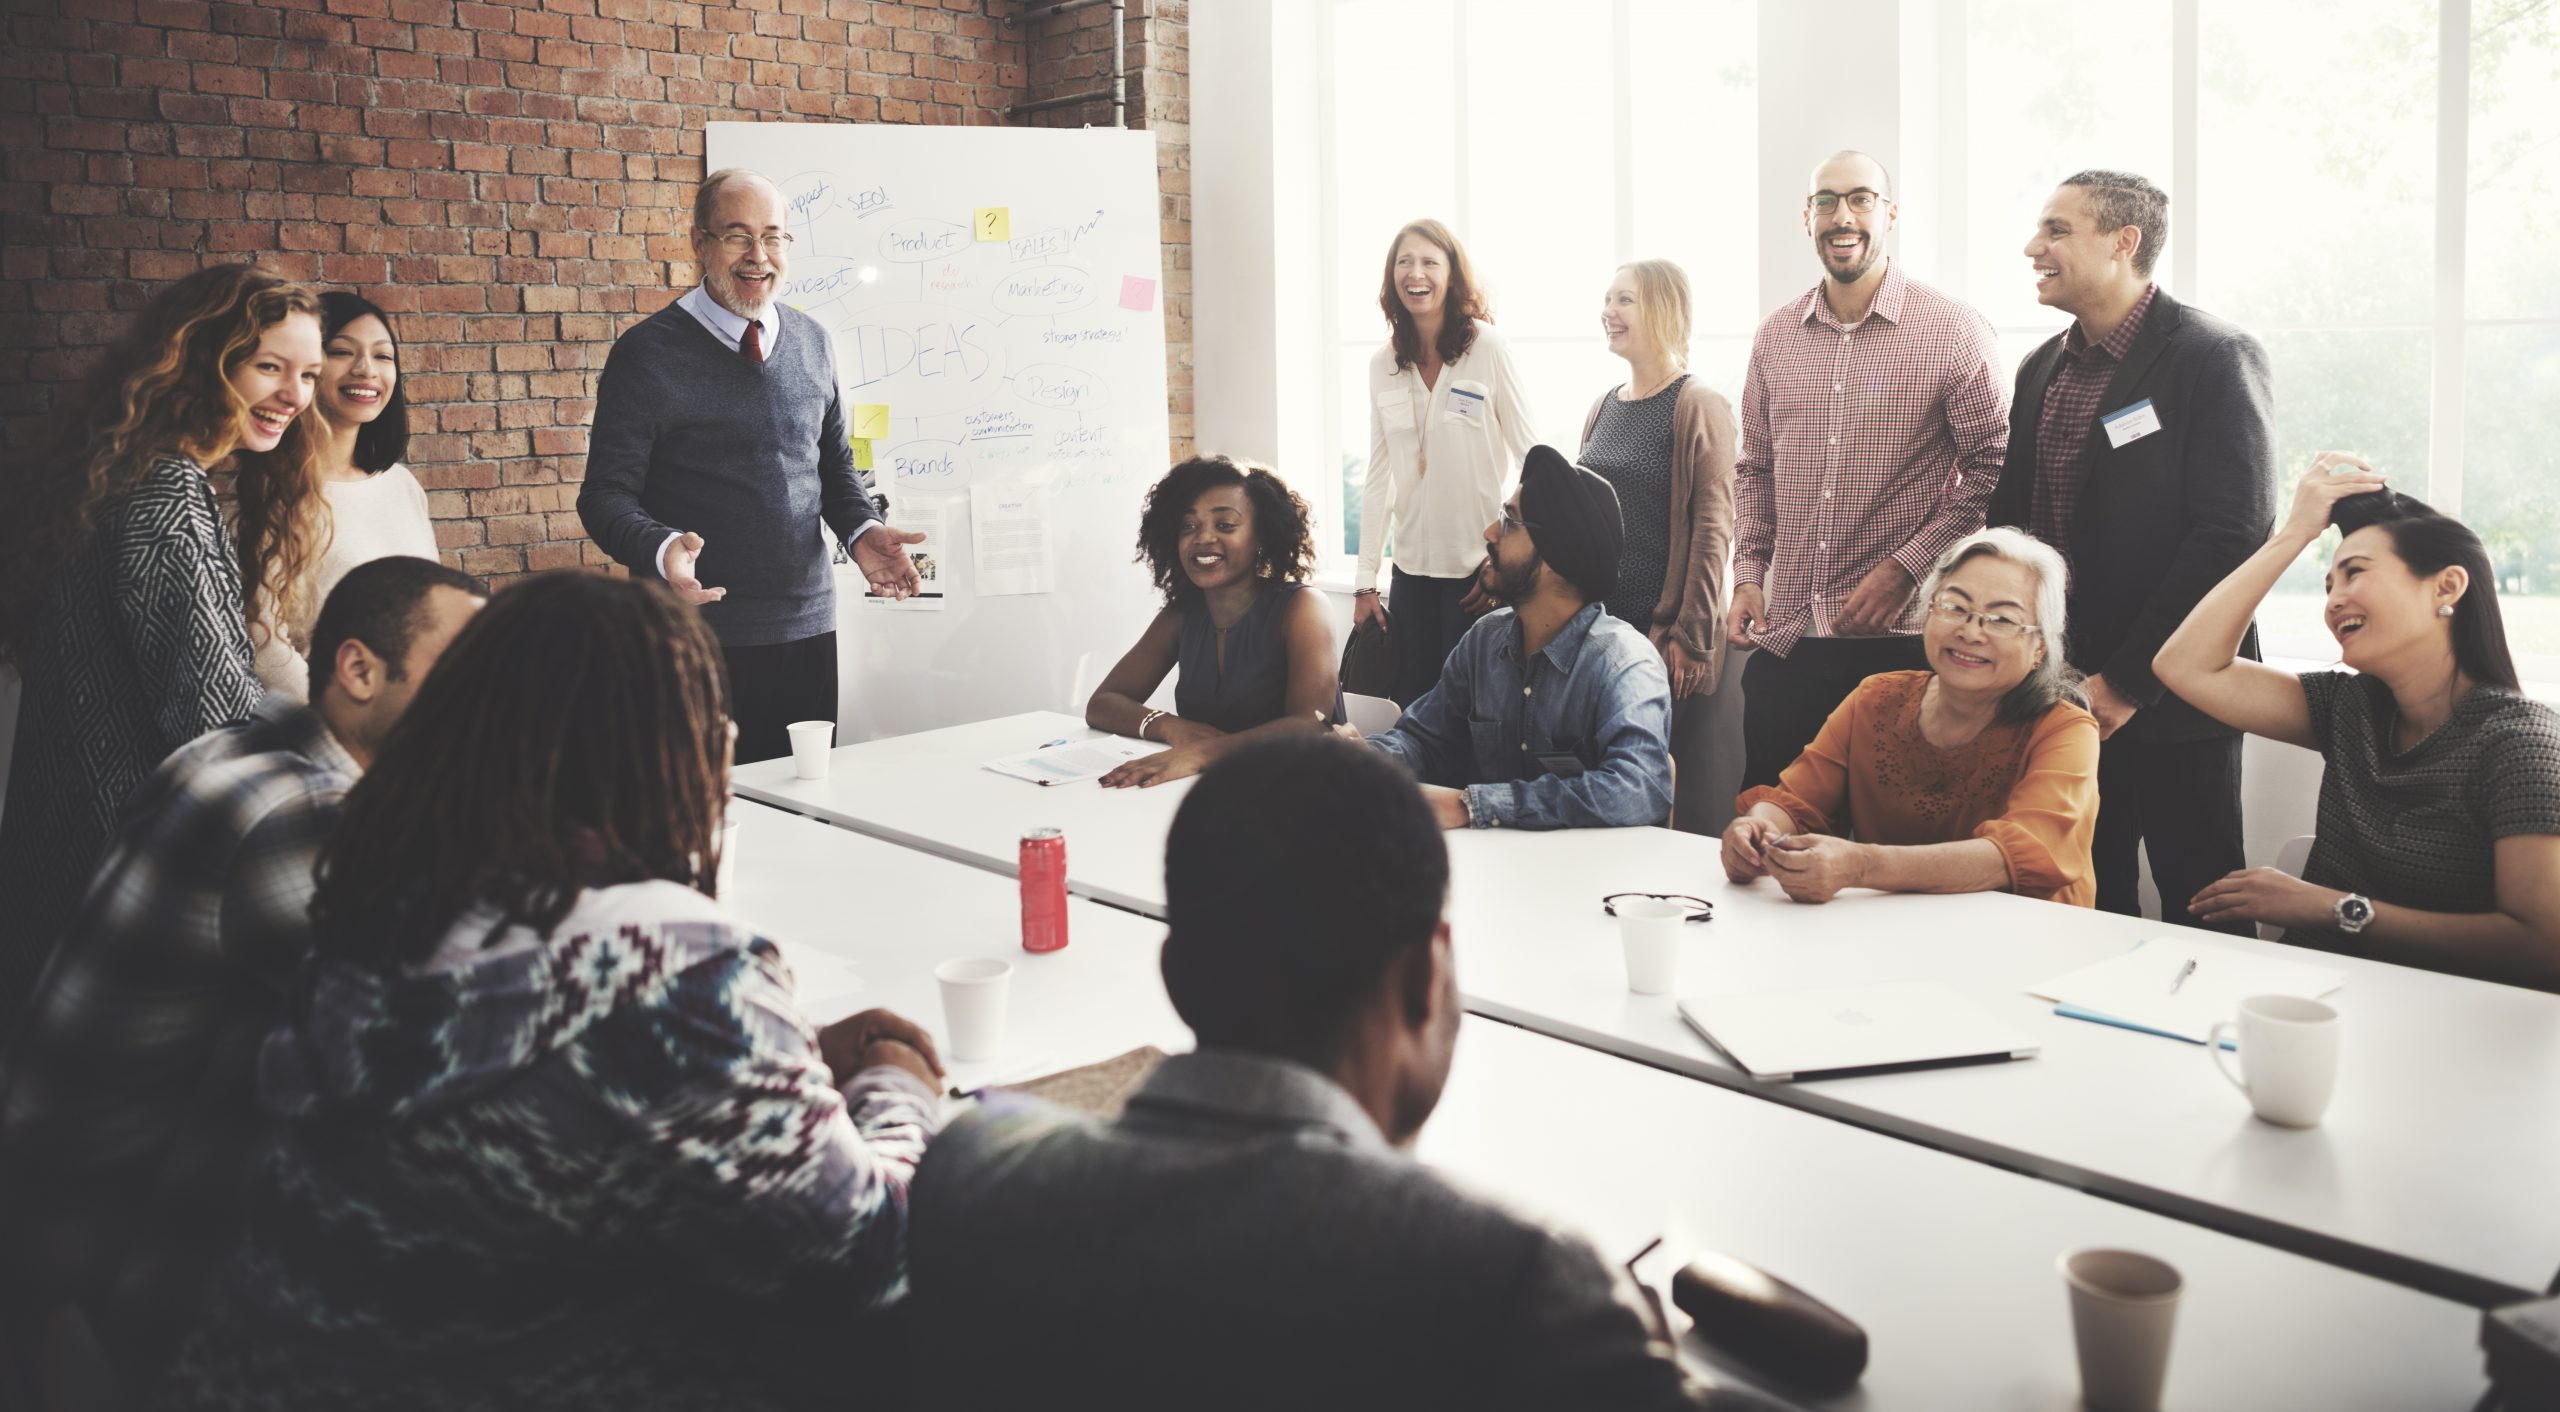 Have your tech leaders assessed team cultures?